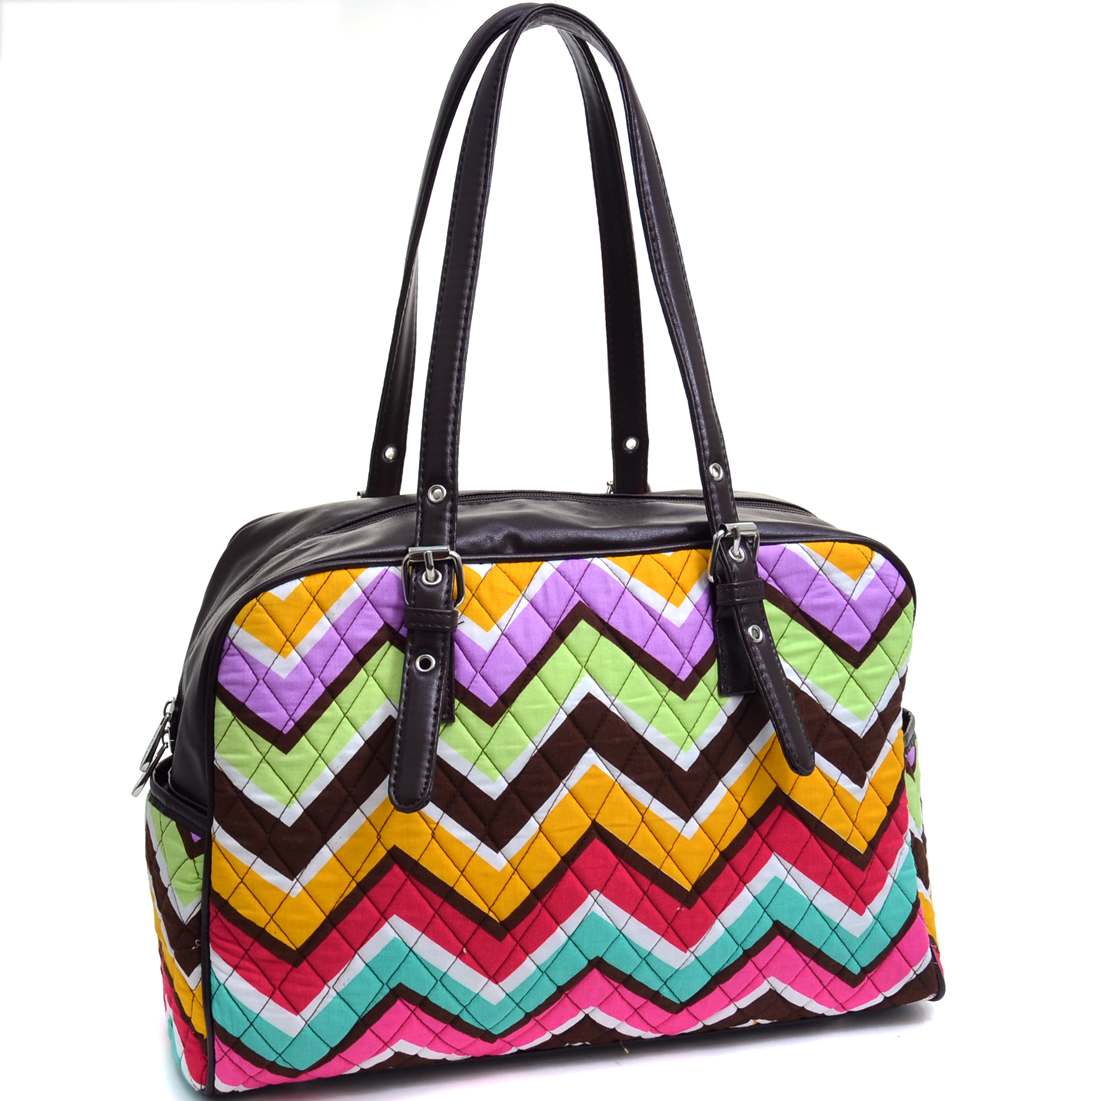 Rosen Blue™ Quilted Neon Chevron Print Weekend Satchel